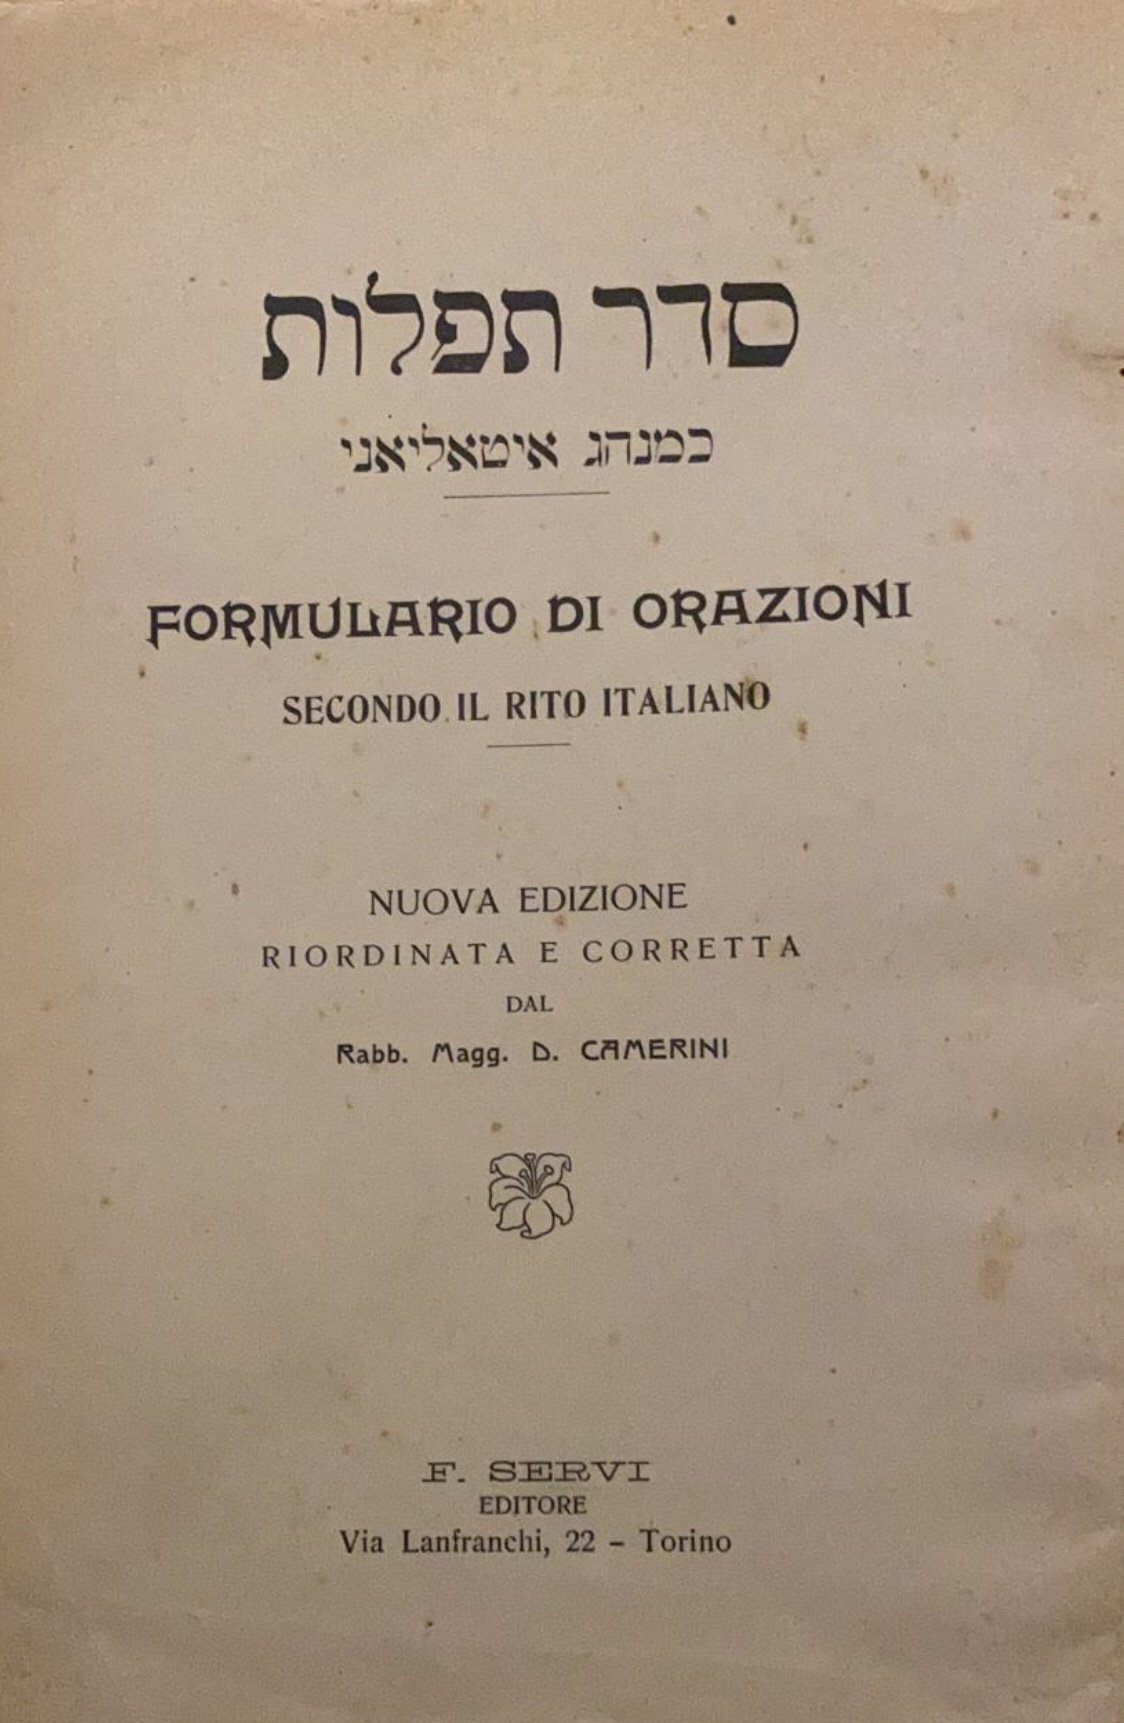 The story of an Italian Jewish Prayer Book that got away from Auschwitz